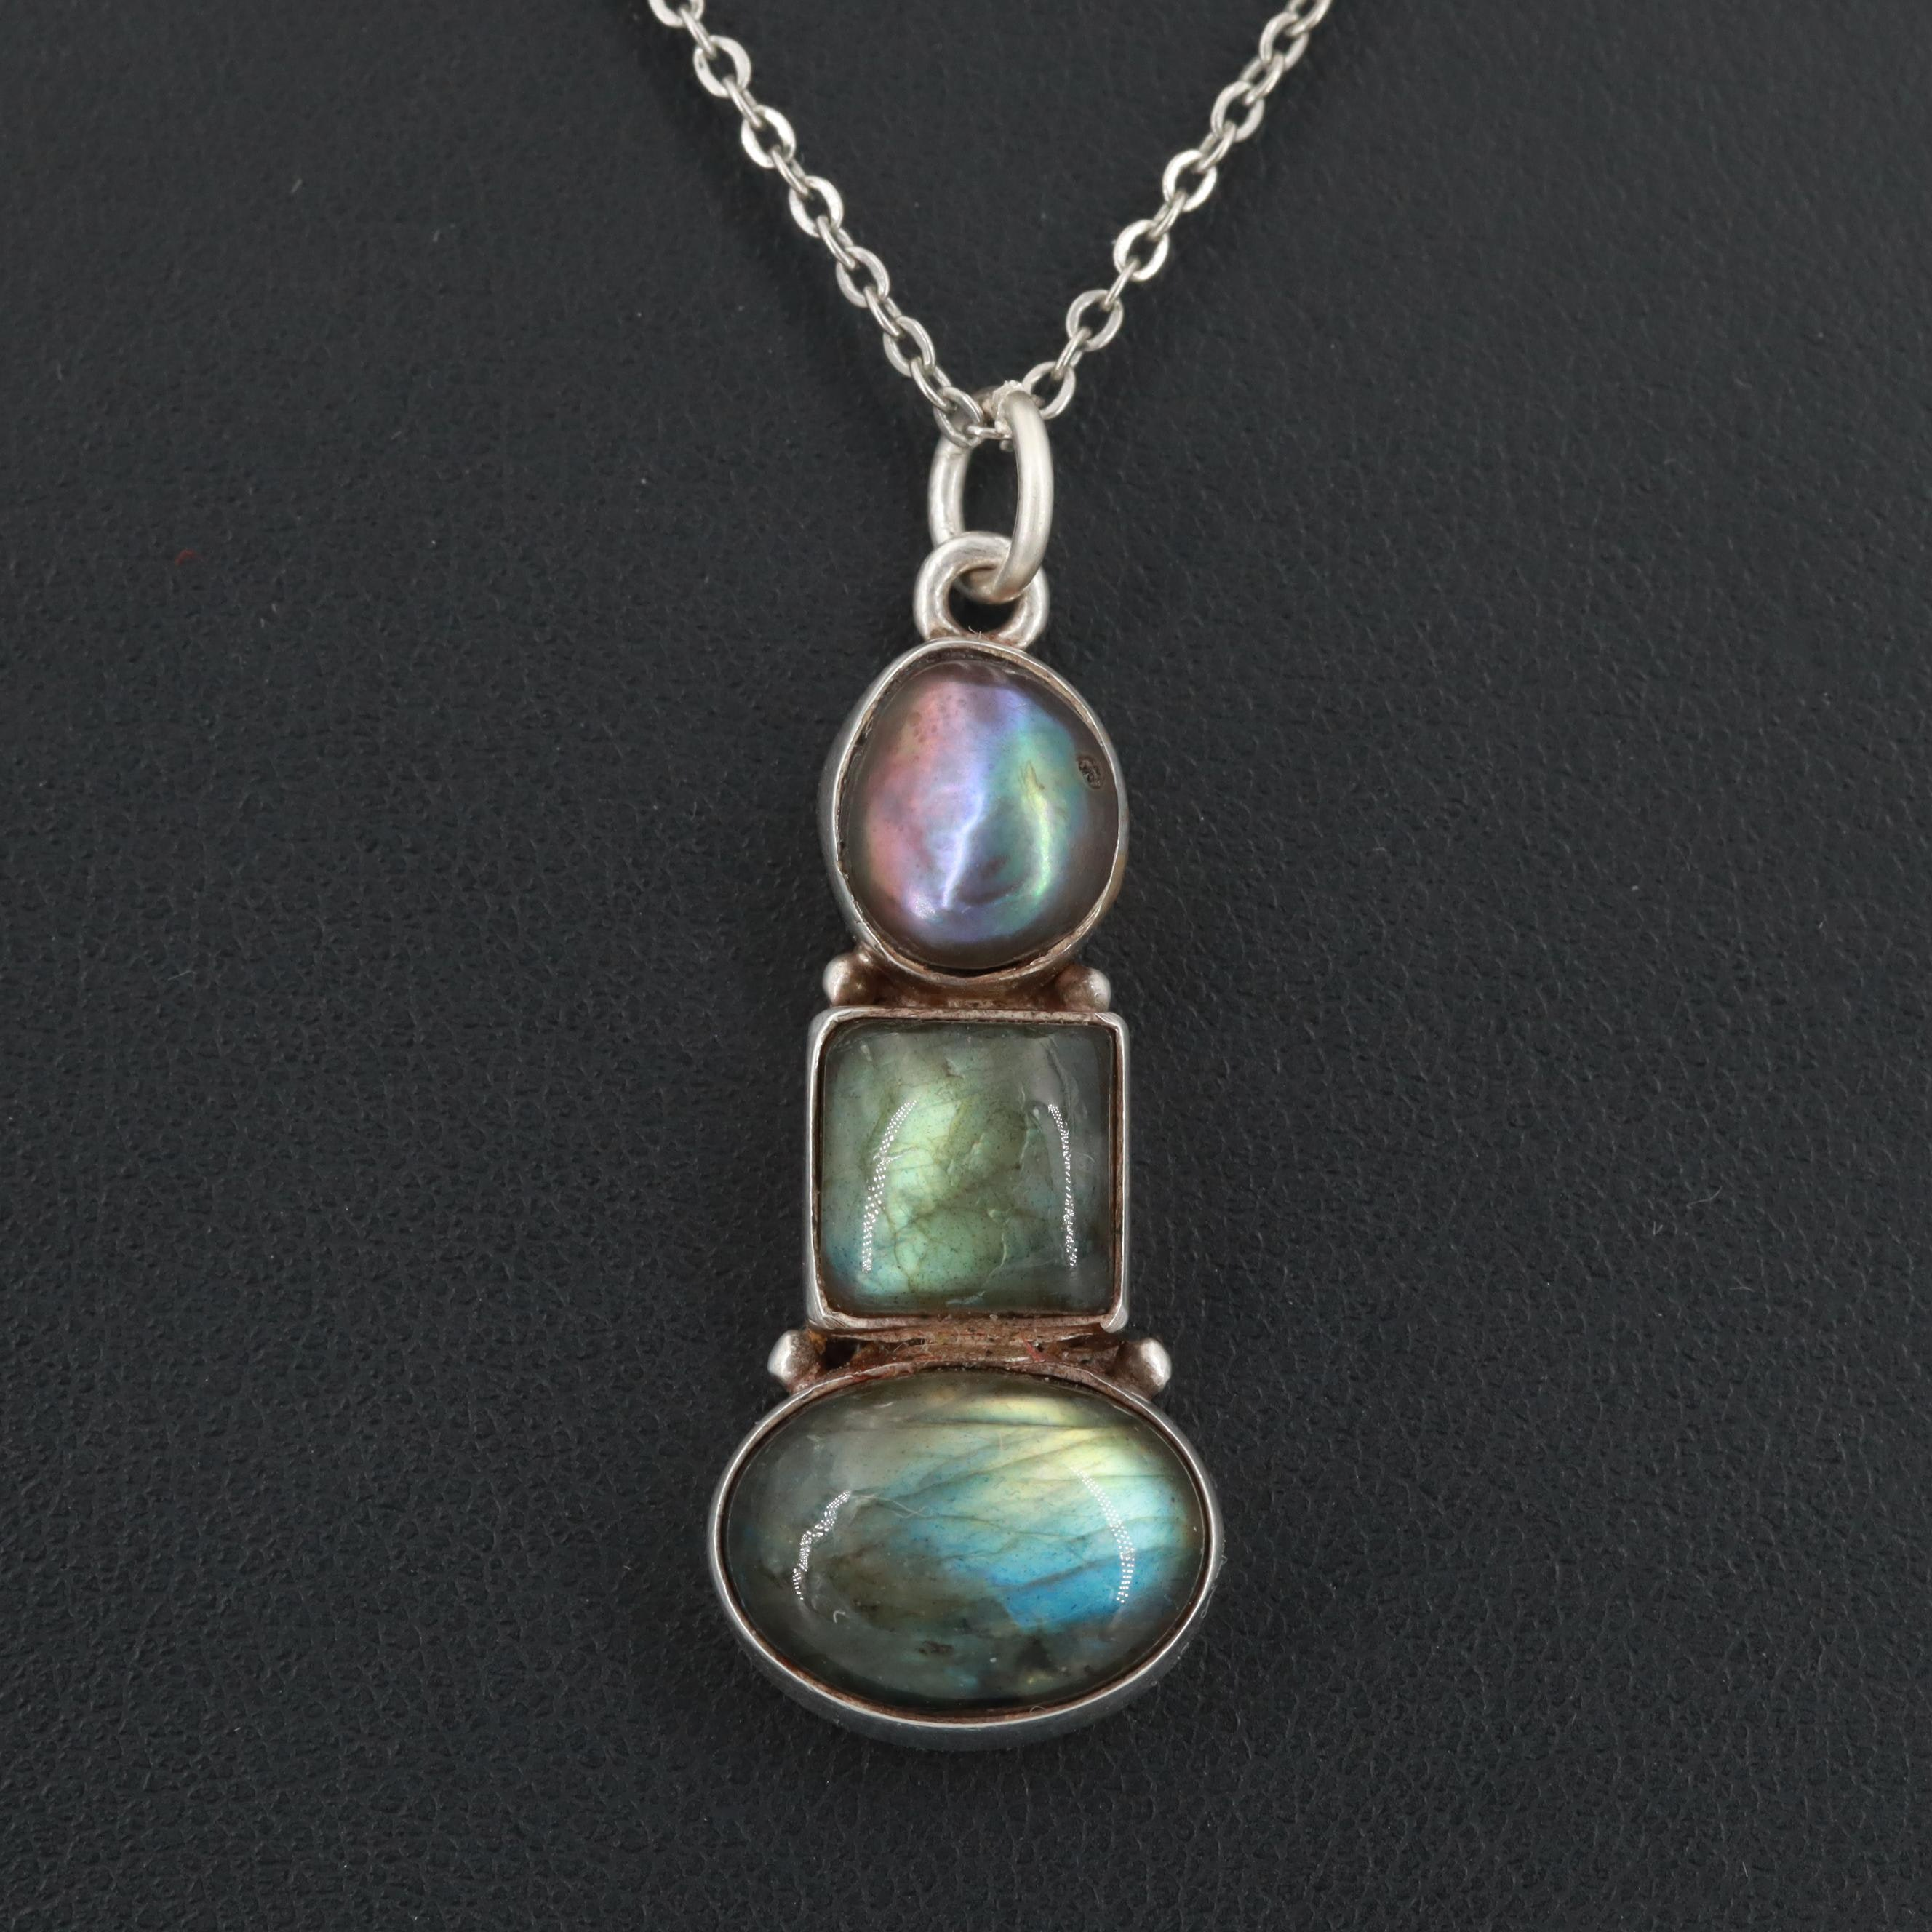 Sterling Silver Labradorite and Black Cultured Pearl Pendant Necklace